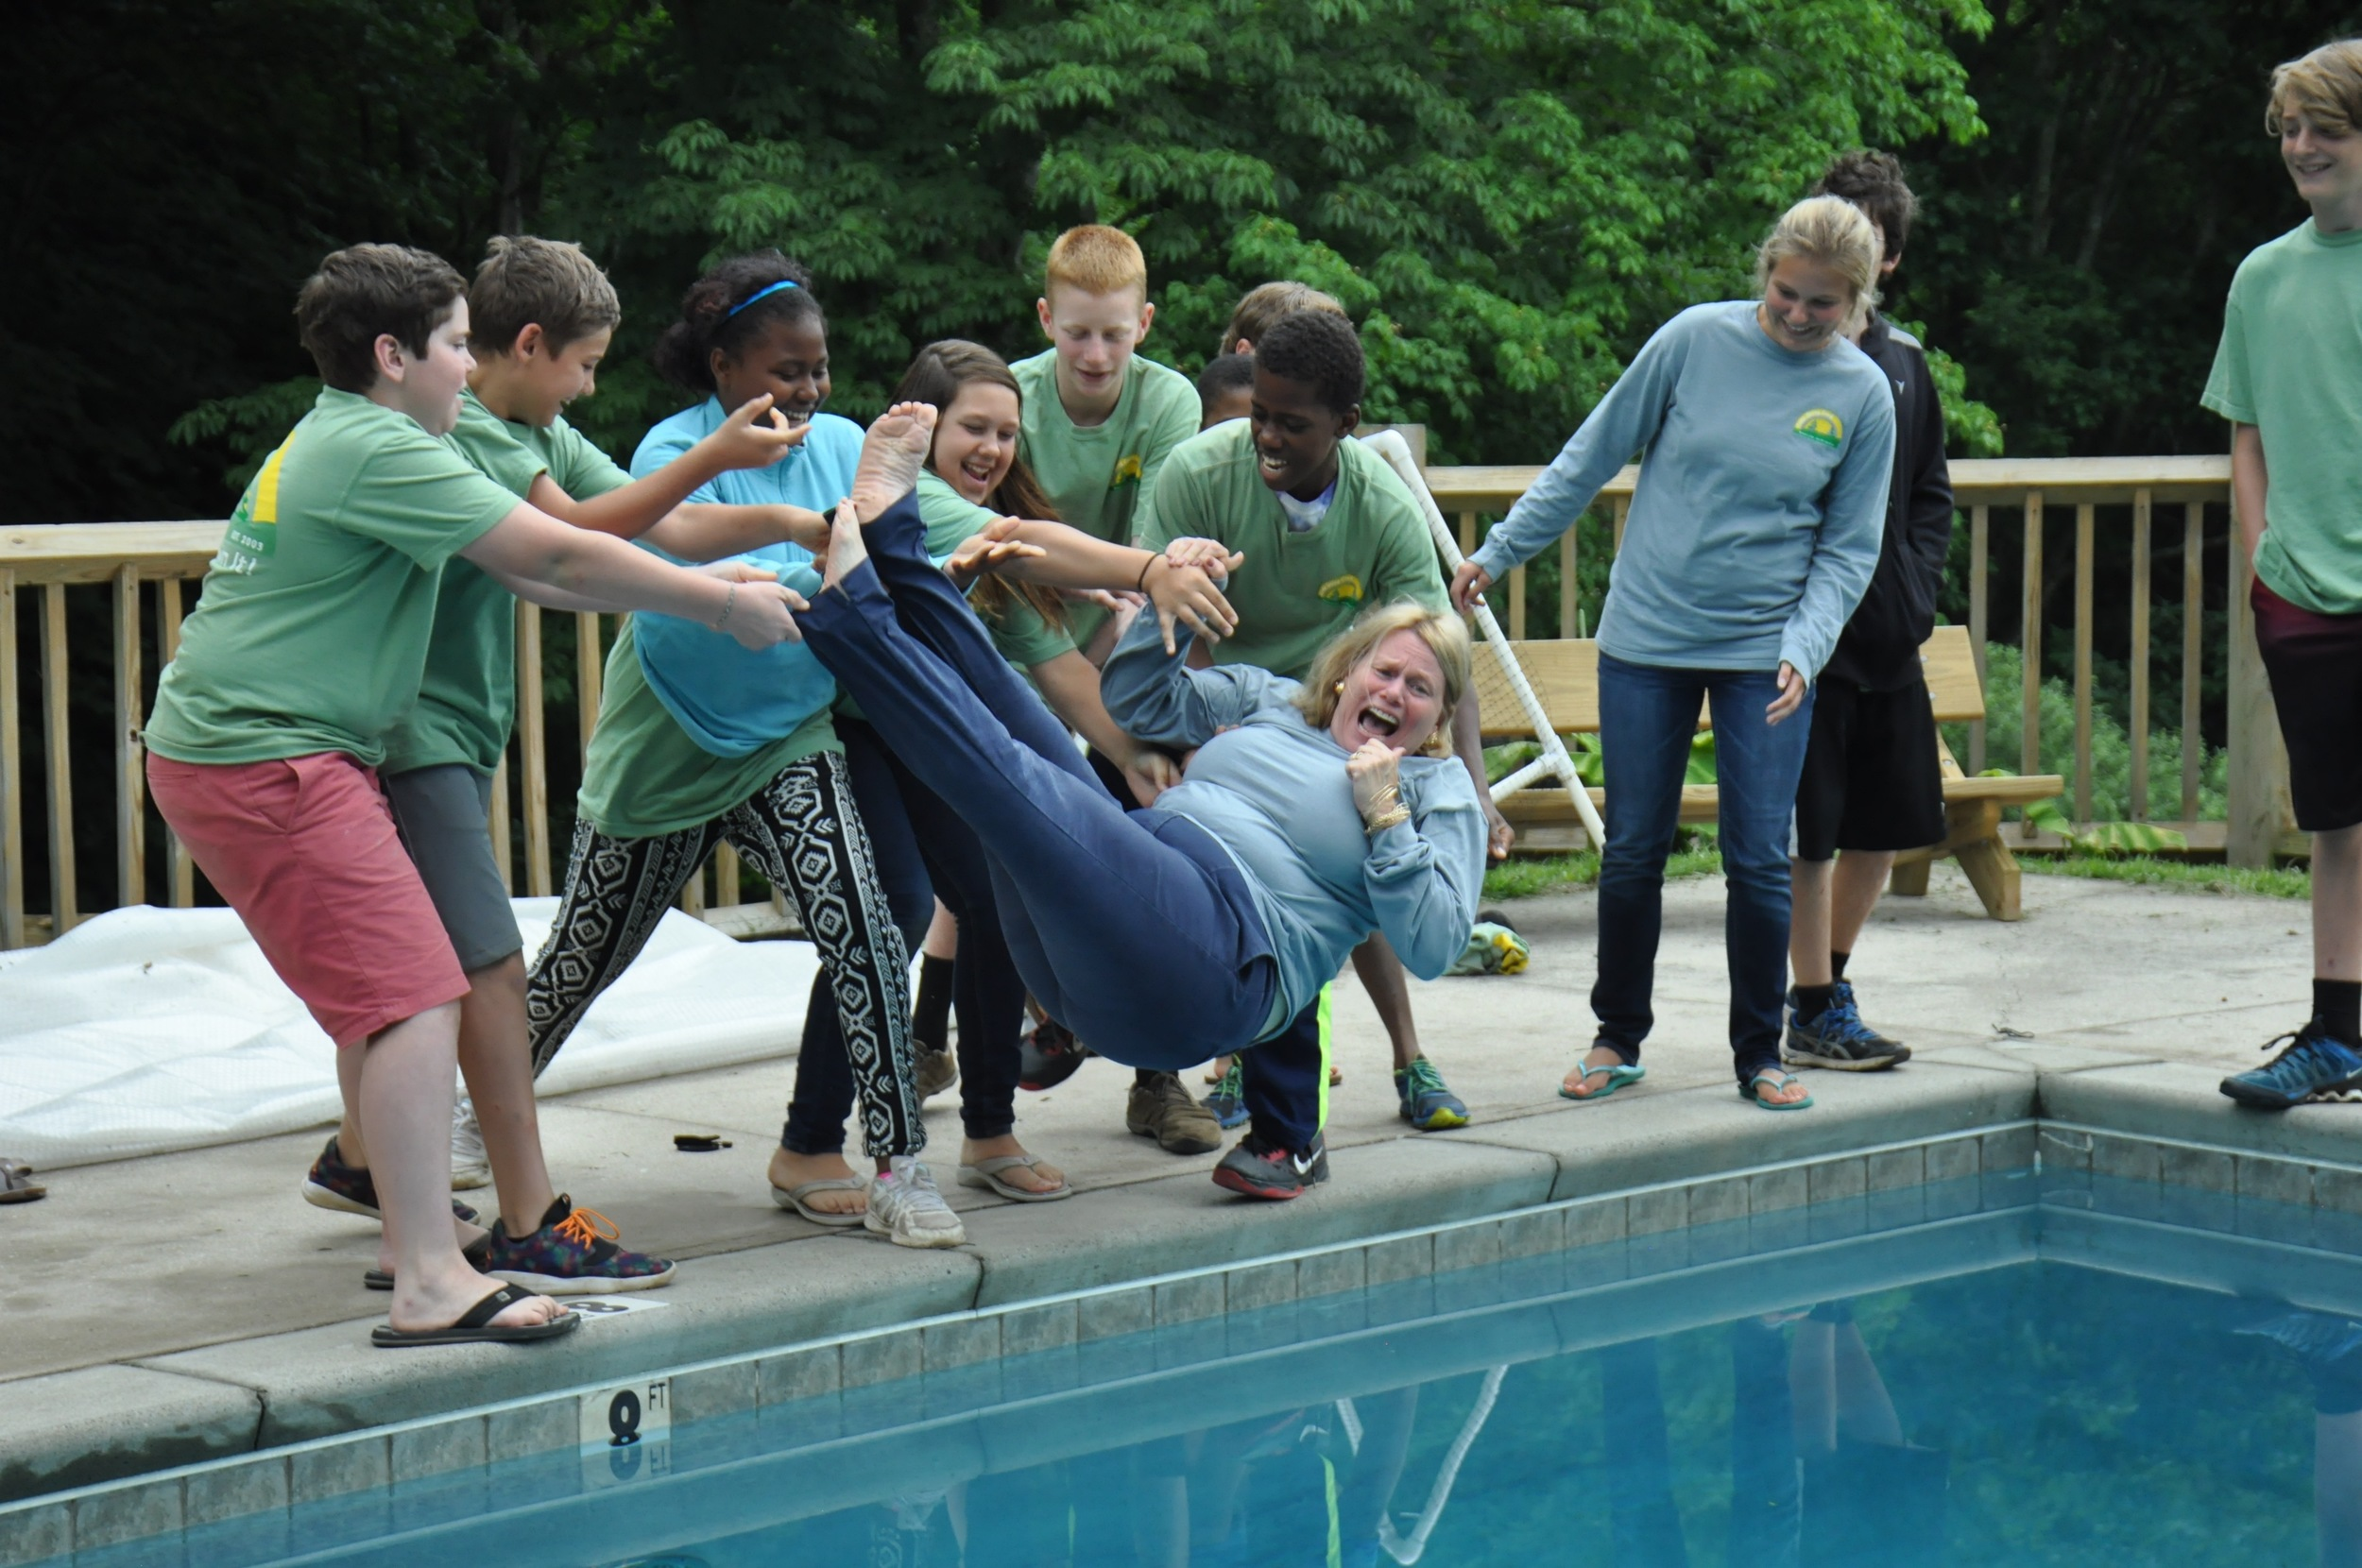 after-the-group-photo-the-campers-planned-a-sneak-attack-to-get-susie-into-the-pool.jpg